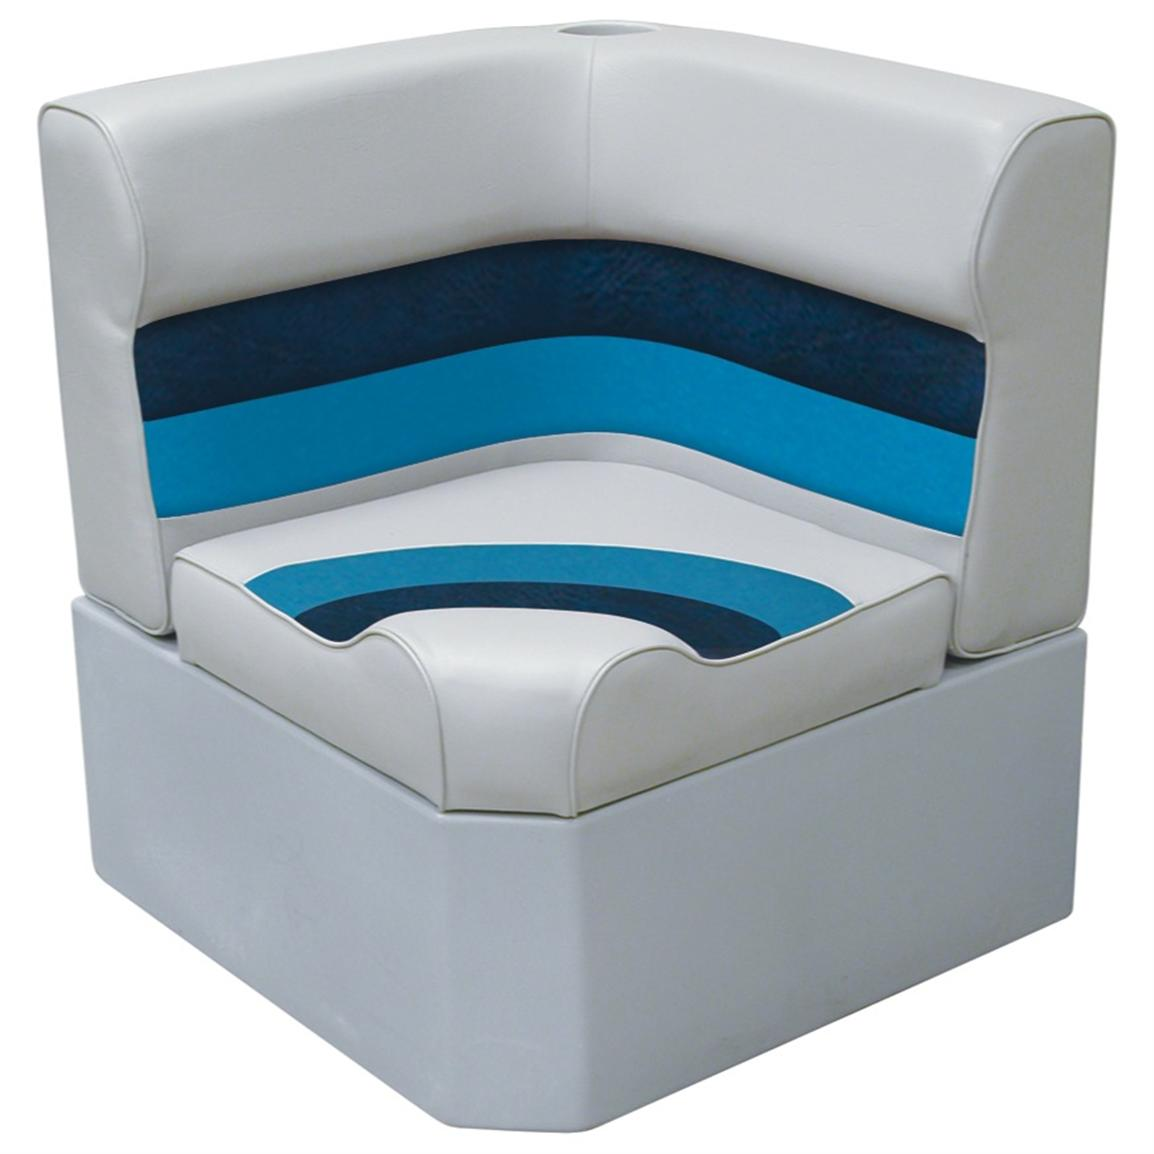 Wise® Deluxe Corner Pontoon Seat, Grey / Navy / Blue